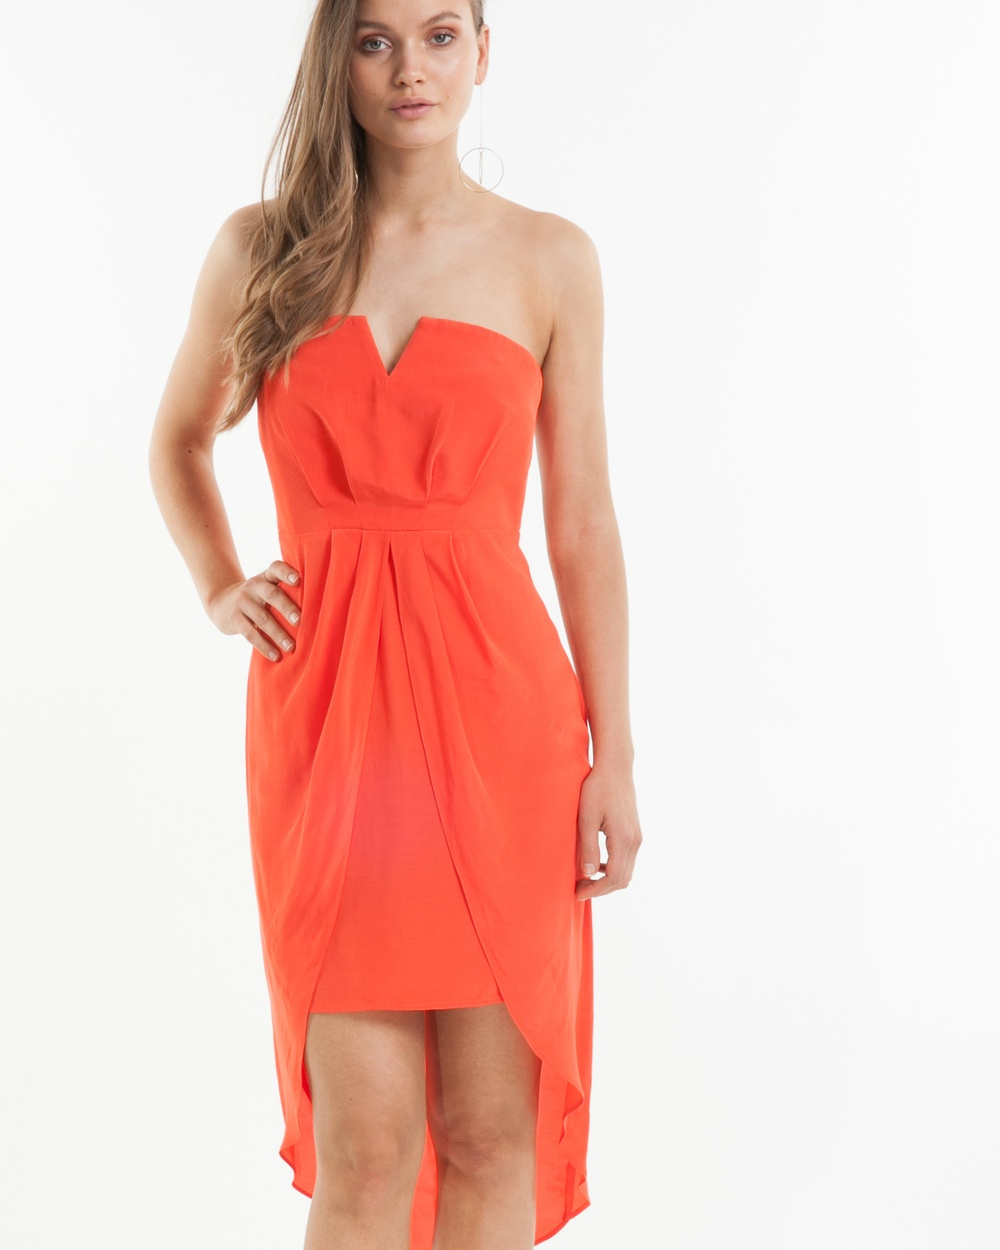 Amelius Heartbreaker Dress Dresses Scarlet Heartbreaker Dress